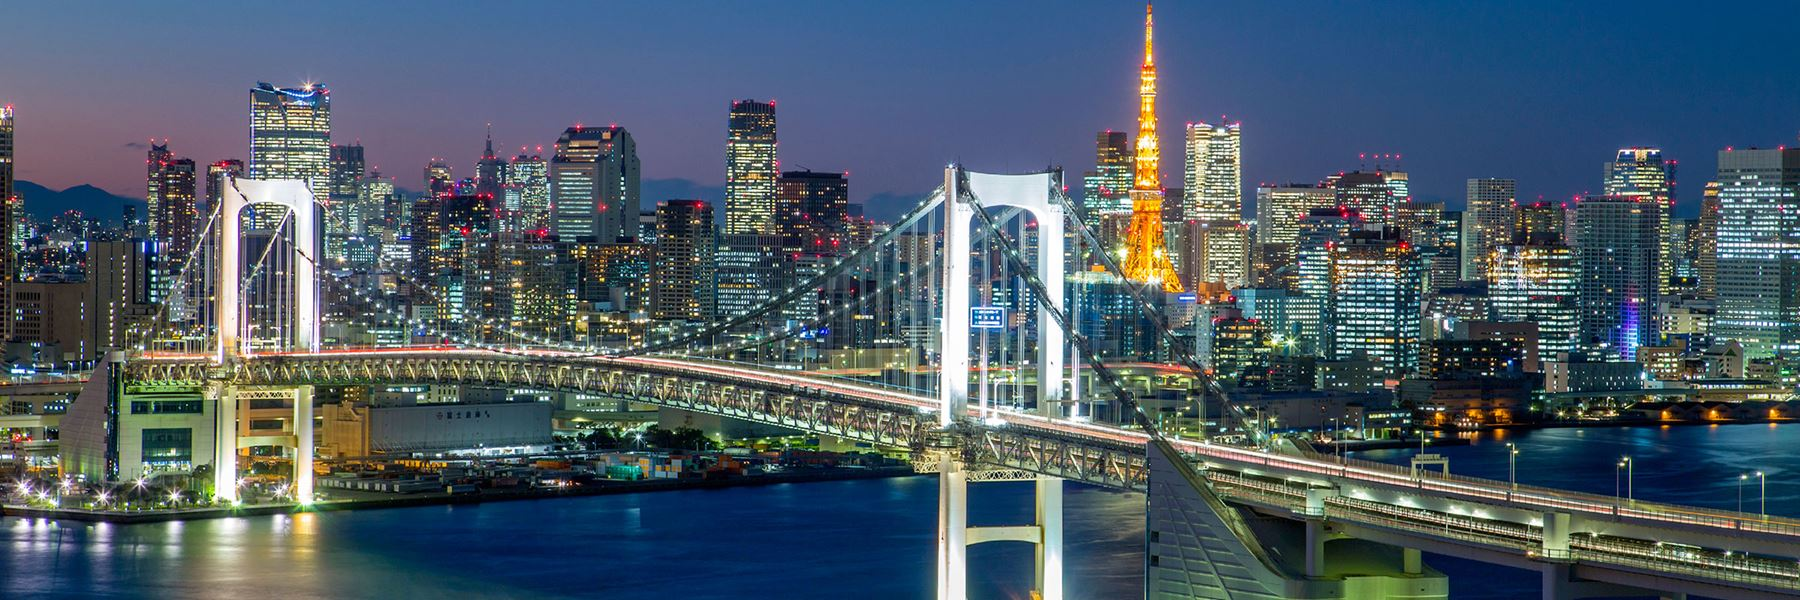 Most Visited Cities In The World As Ranked By Mastercard